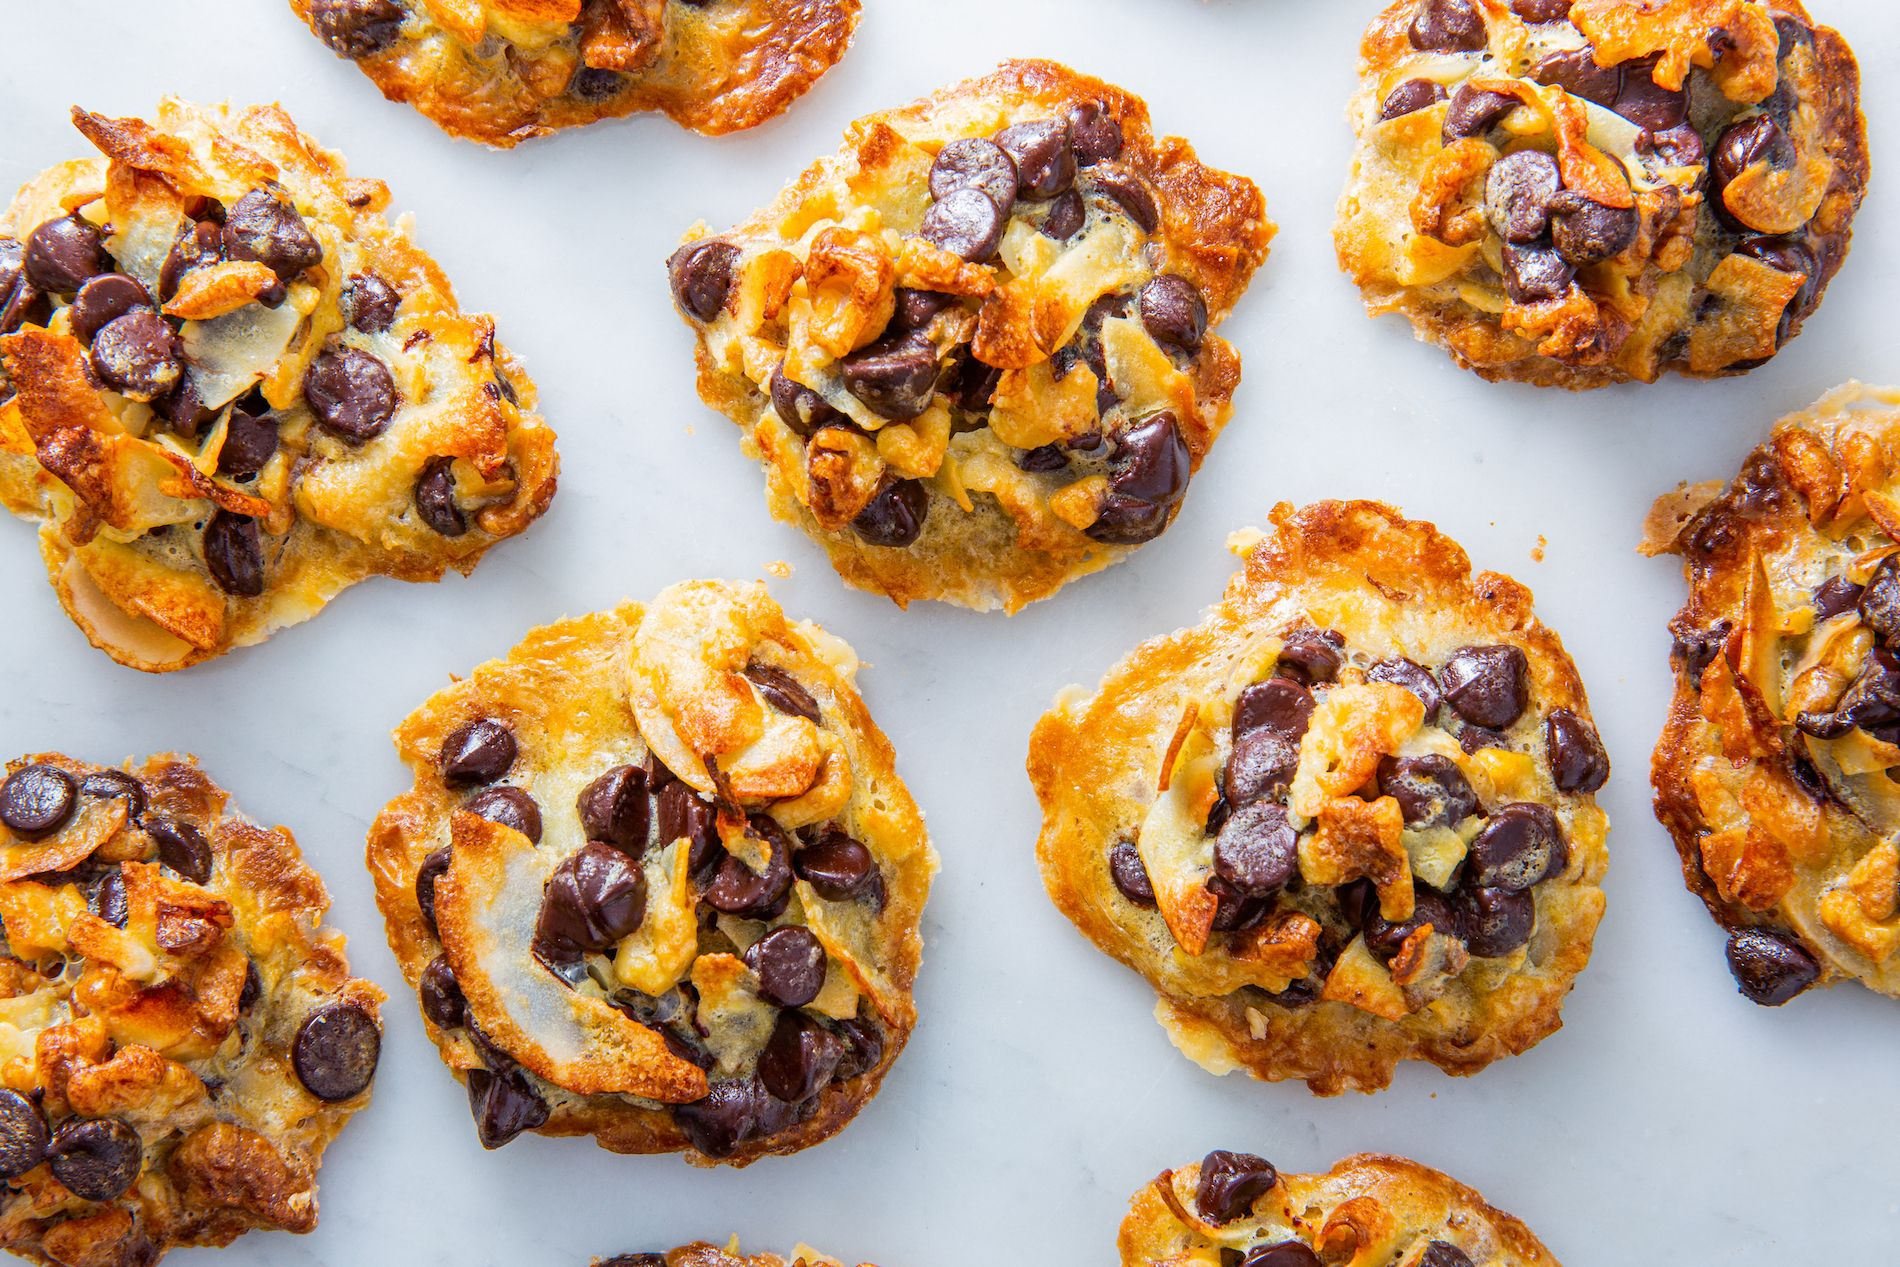 Thank you for voting for Makinze's Coconut Magic Keto Cookies!